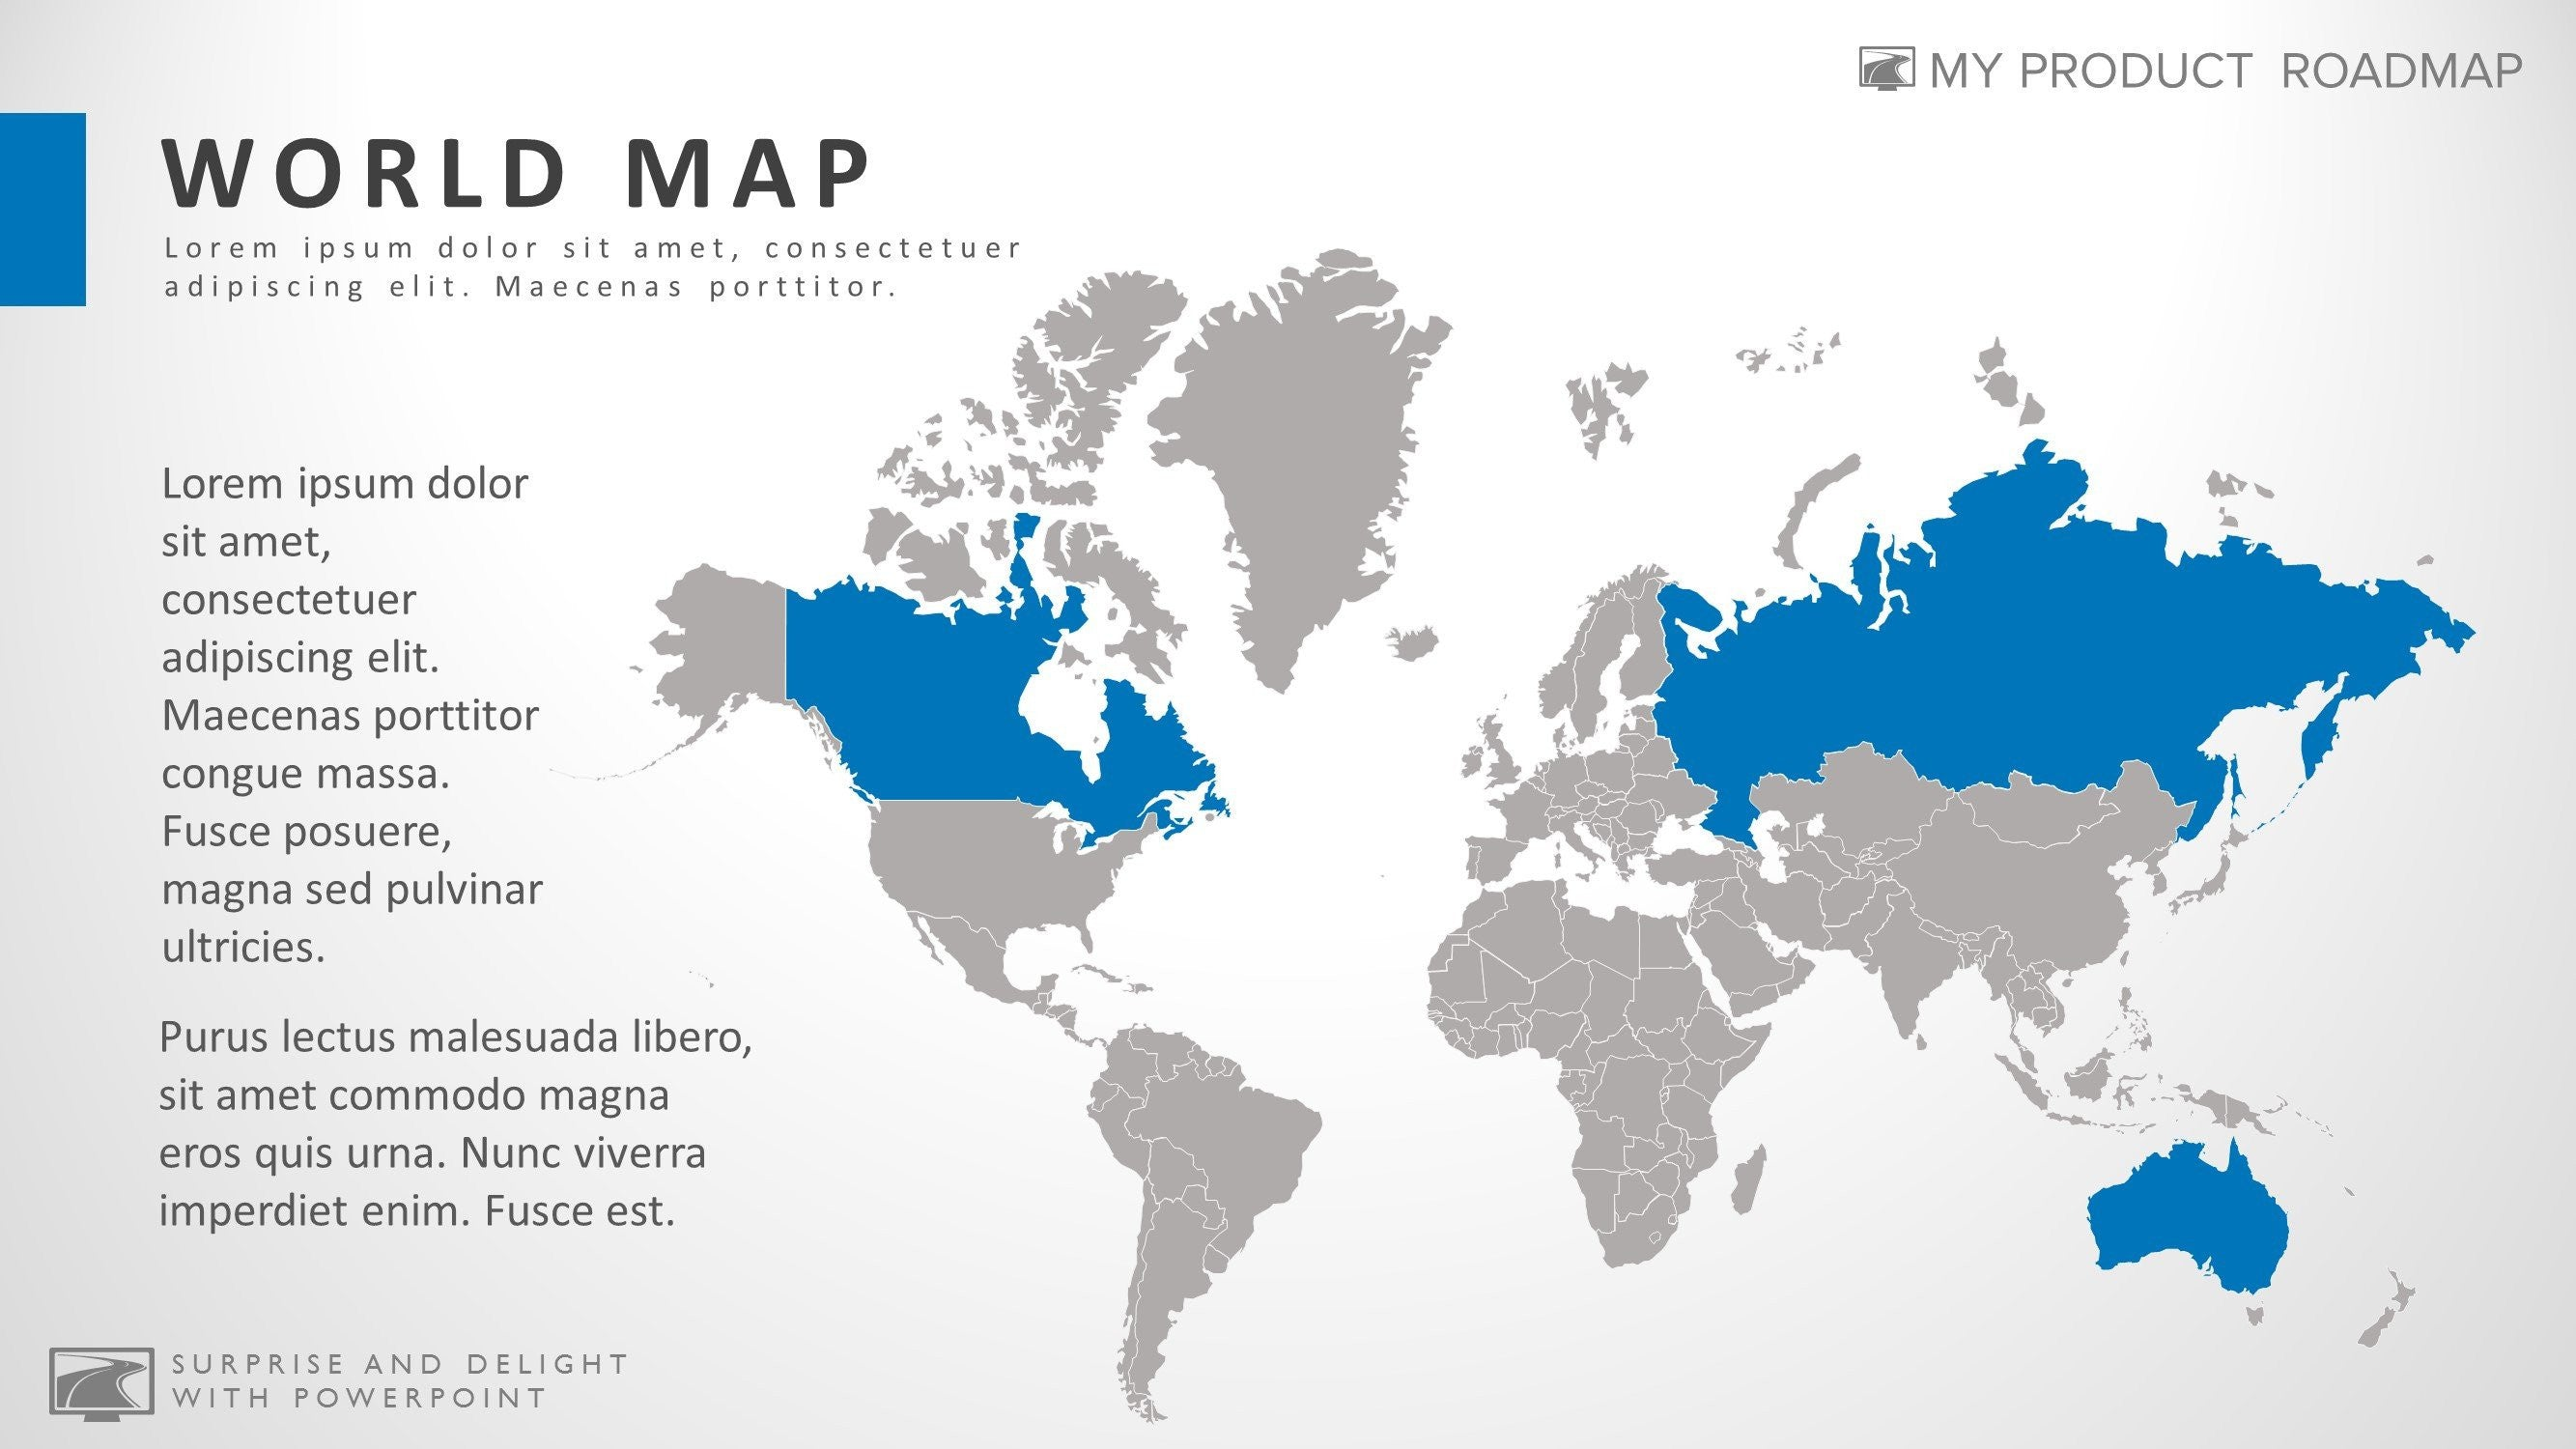 Powerpoint Global Map.World Editable Powerpoint Map Infographic Presentation Template